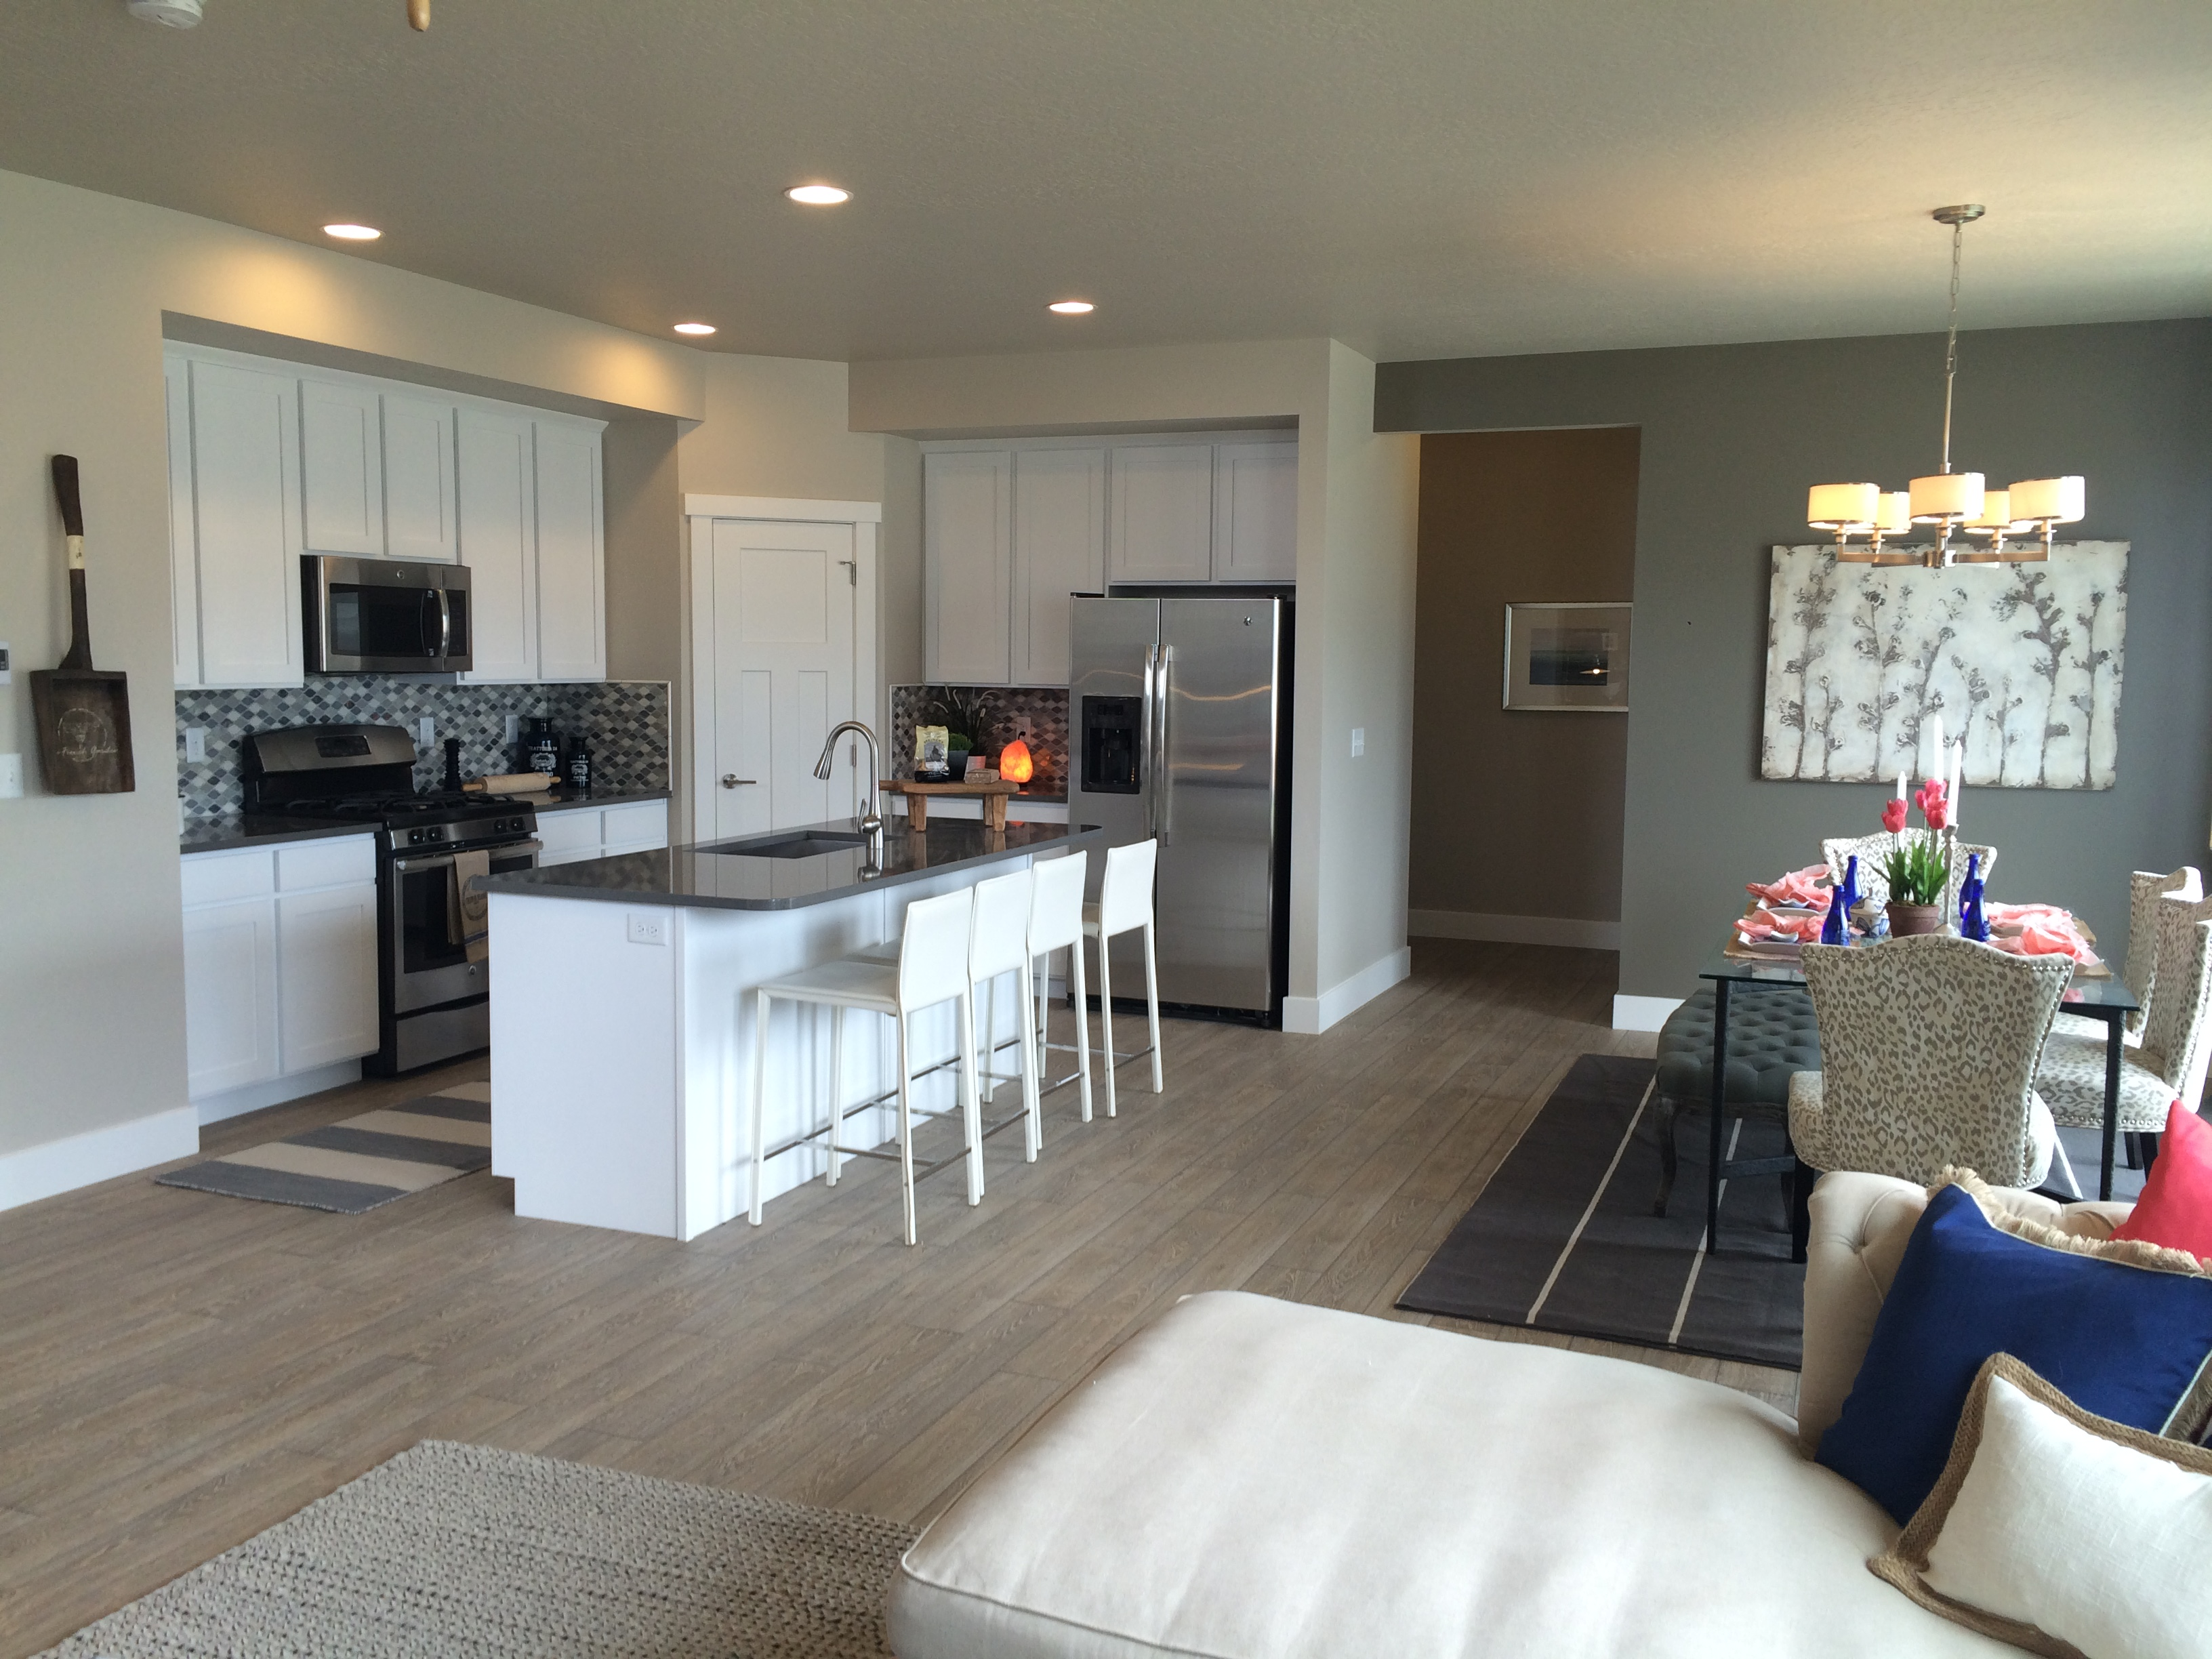 a completed a furnished kitchen built by McArthur Homes